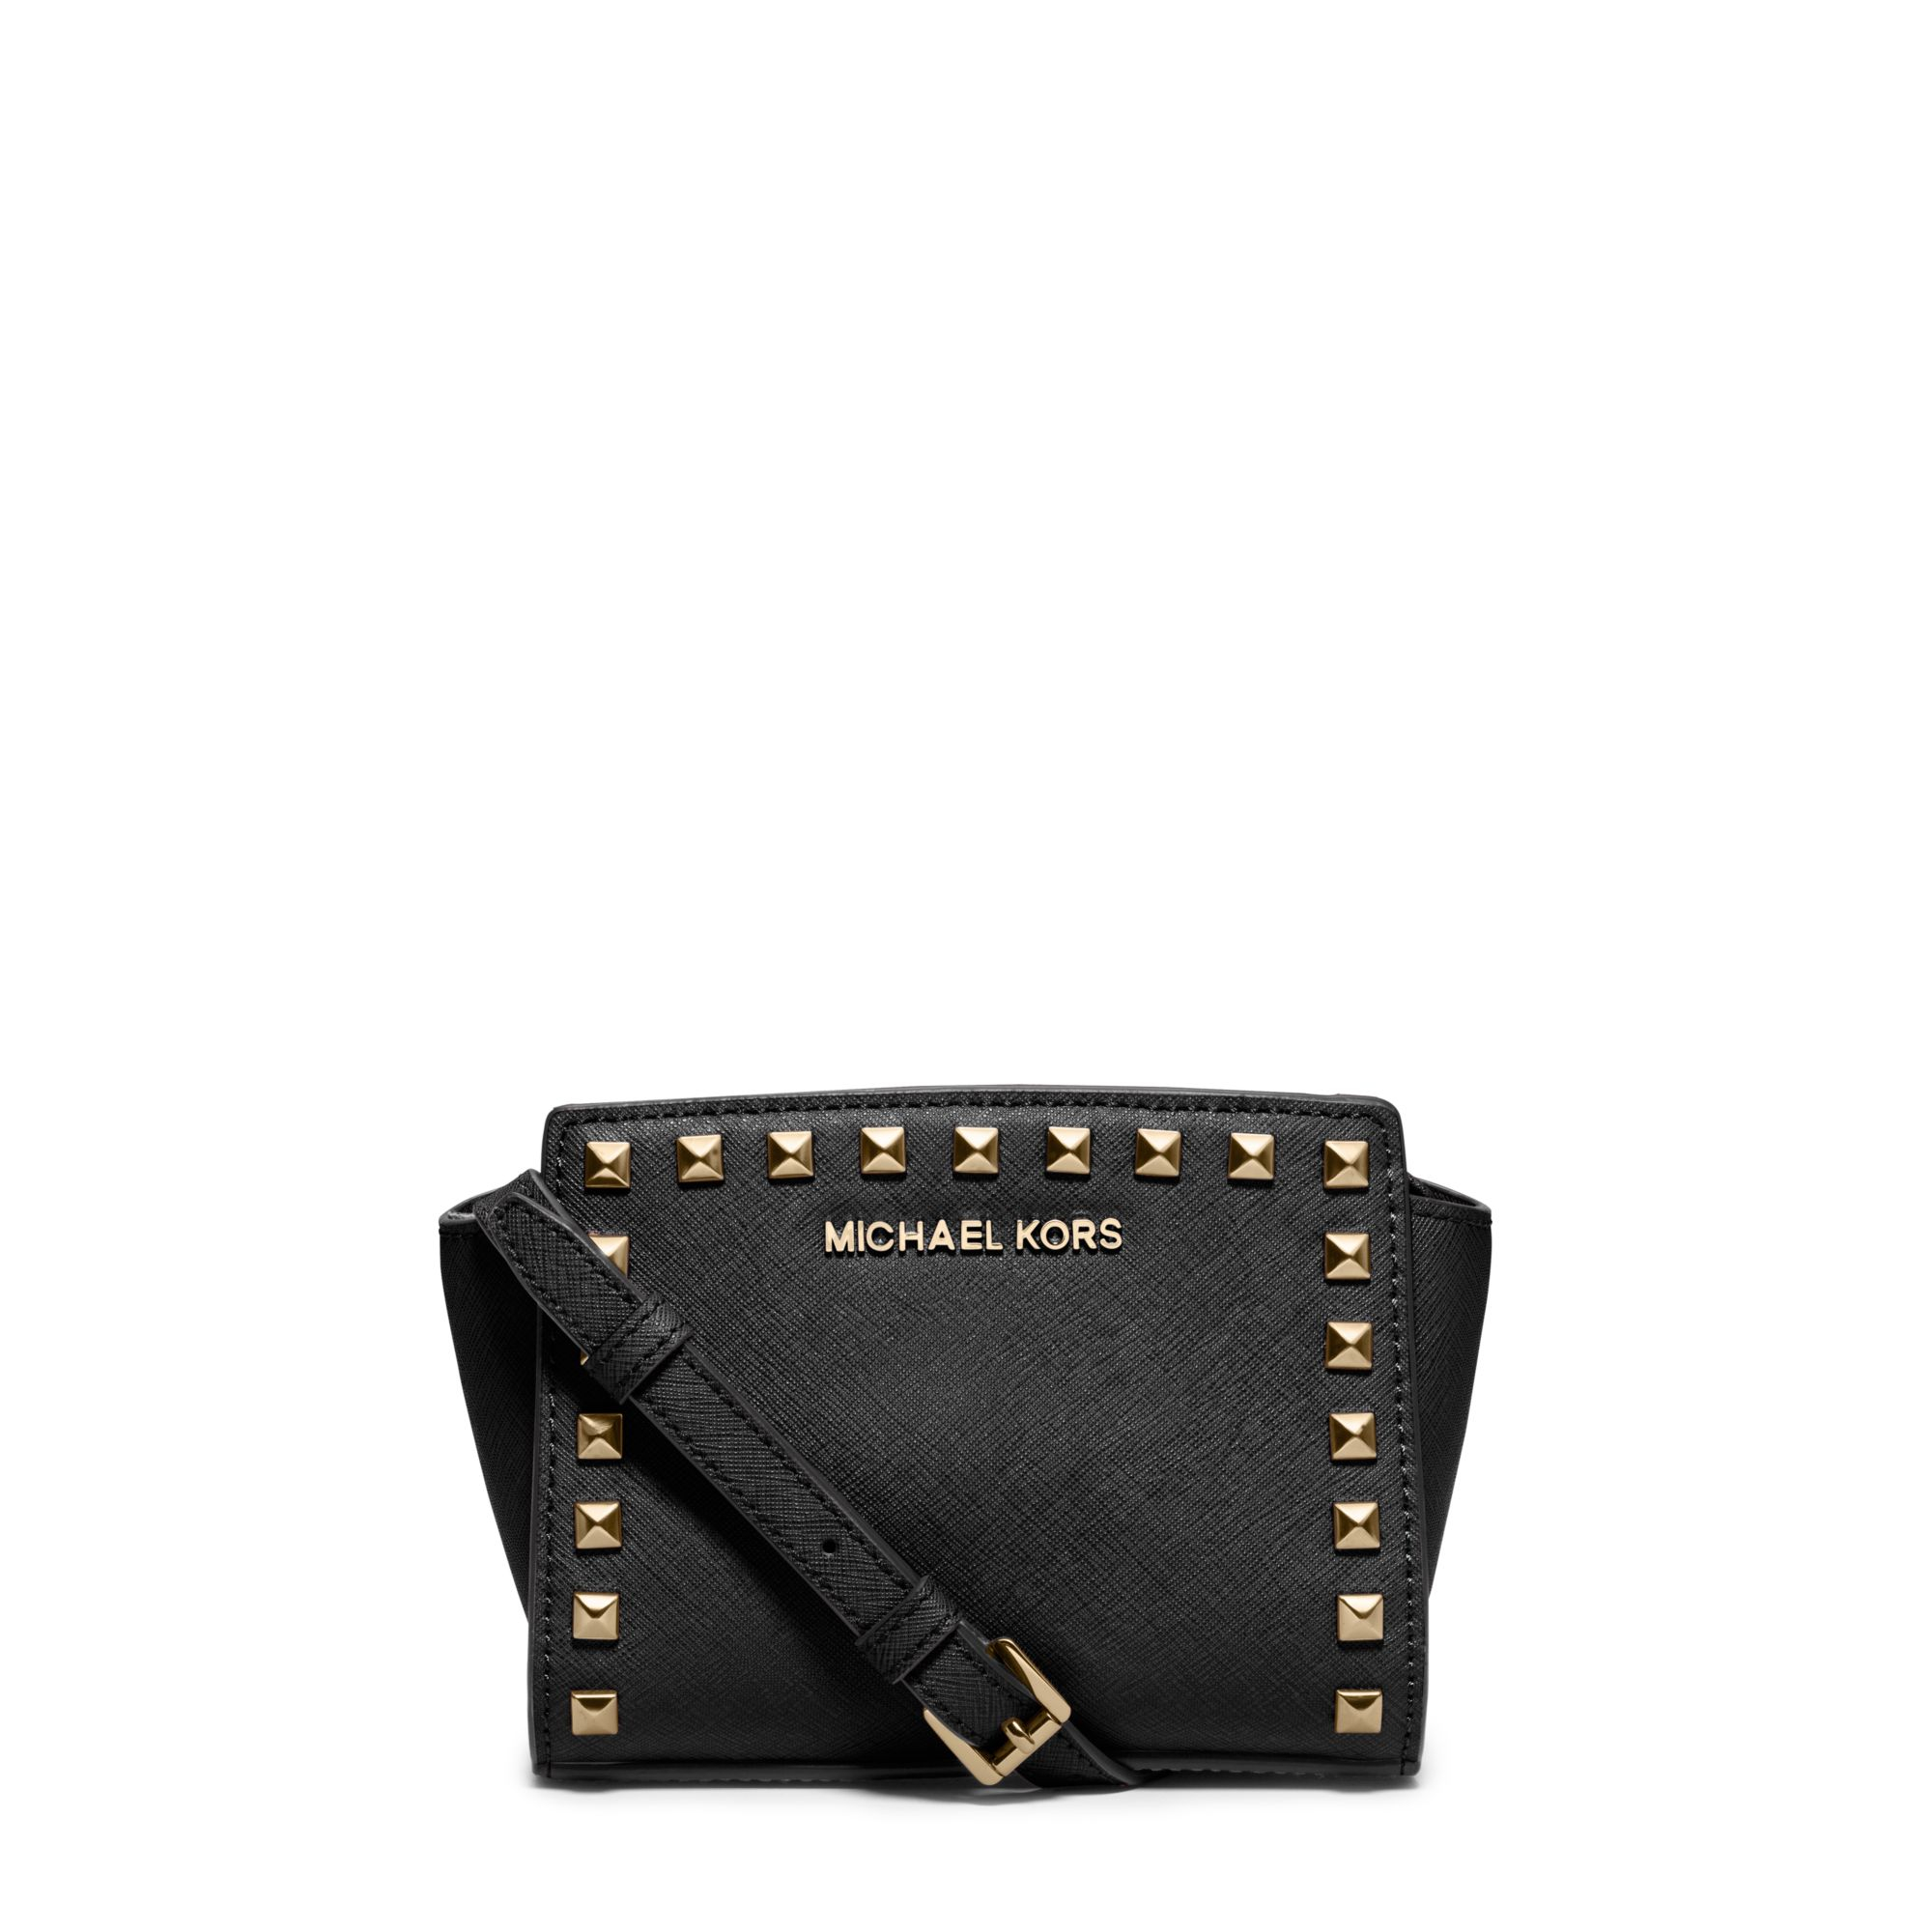 212801245a3a82 Michael Kors Selma Mini Studded Leather Crossbody in Black - Lyst